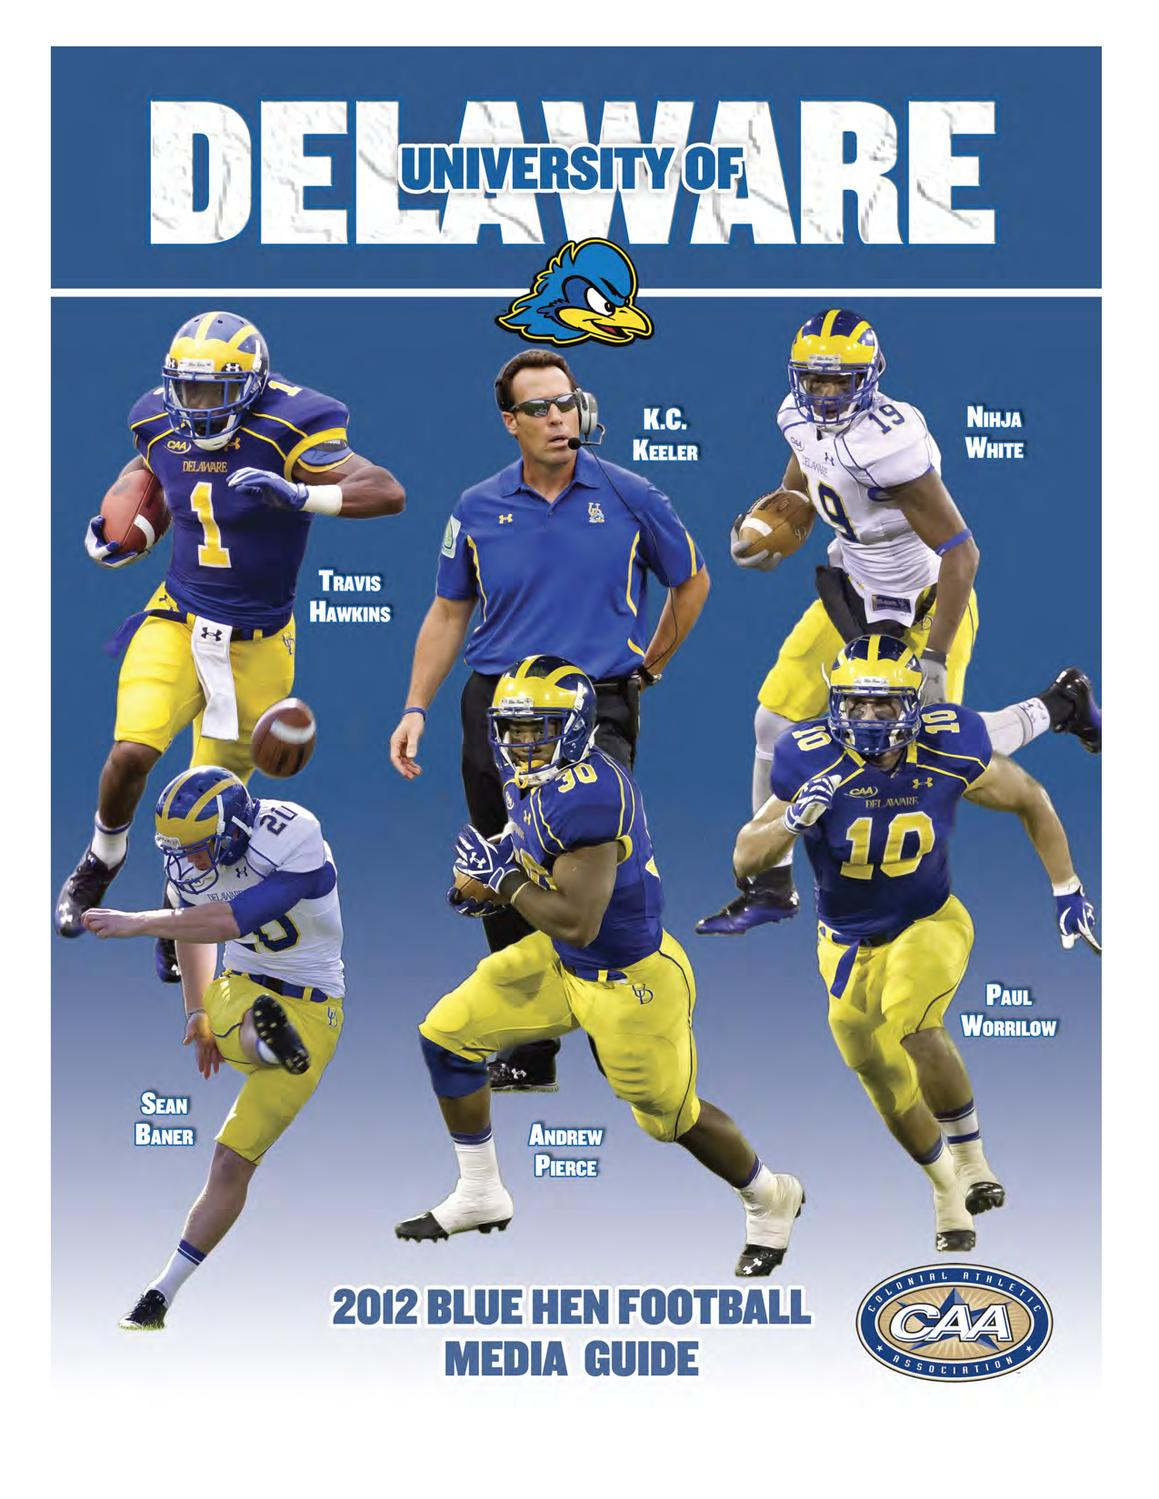 d1936a348 2012 Football Media Guide by UDBlueHens Delaware - issuu